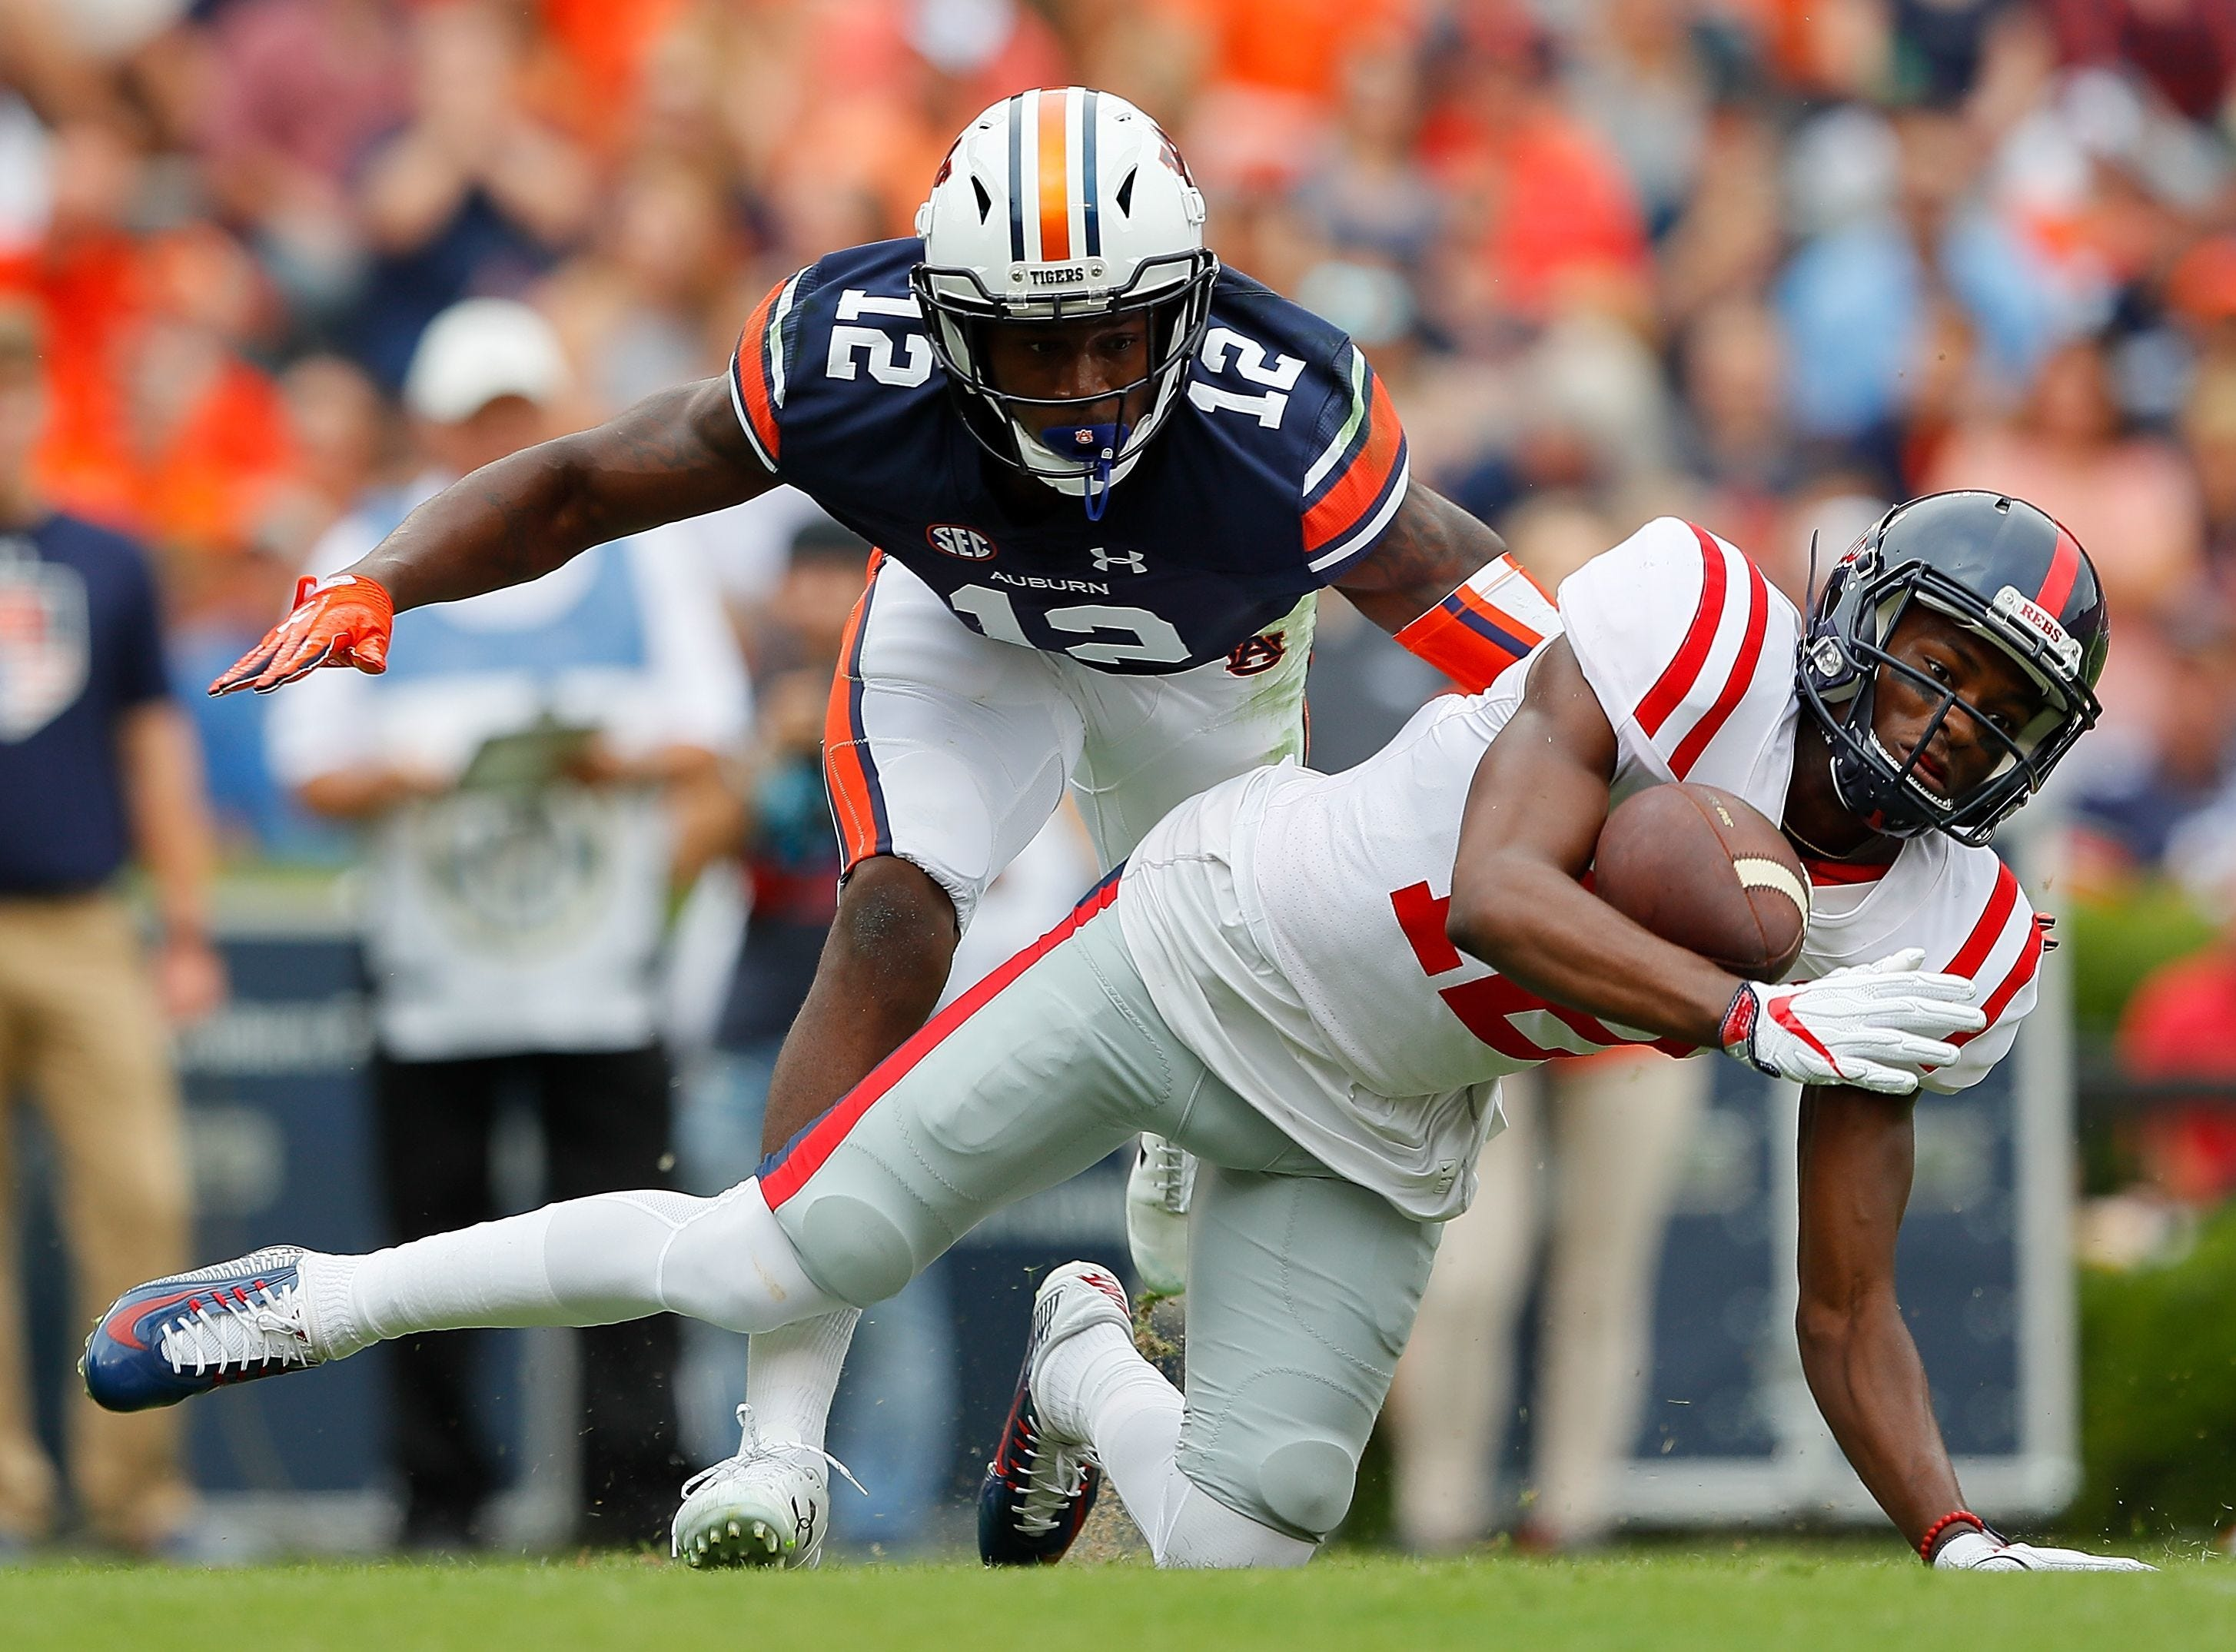 Cocoa grad Jamel Dean (12) of the Auburn Tigers defends a pass attempt to Ole Miss' Van Jefferson at Jordan Hare Stadium on October 7, 2017. (Photo by Kevin C. Cox/Getty Images)  Kevin C. Cox, Getty Images Cocoa grad Jamel Dean (12) of the Auburn Tigers defends a pass attempt to Ole Miss' Van Jefferson at Jordan Hare Stadium on October 7, 2017. (Photo by Kevin C. Cox/Getty Images)